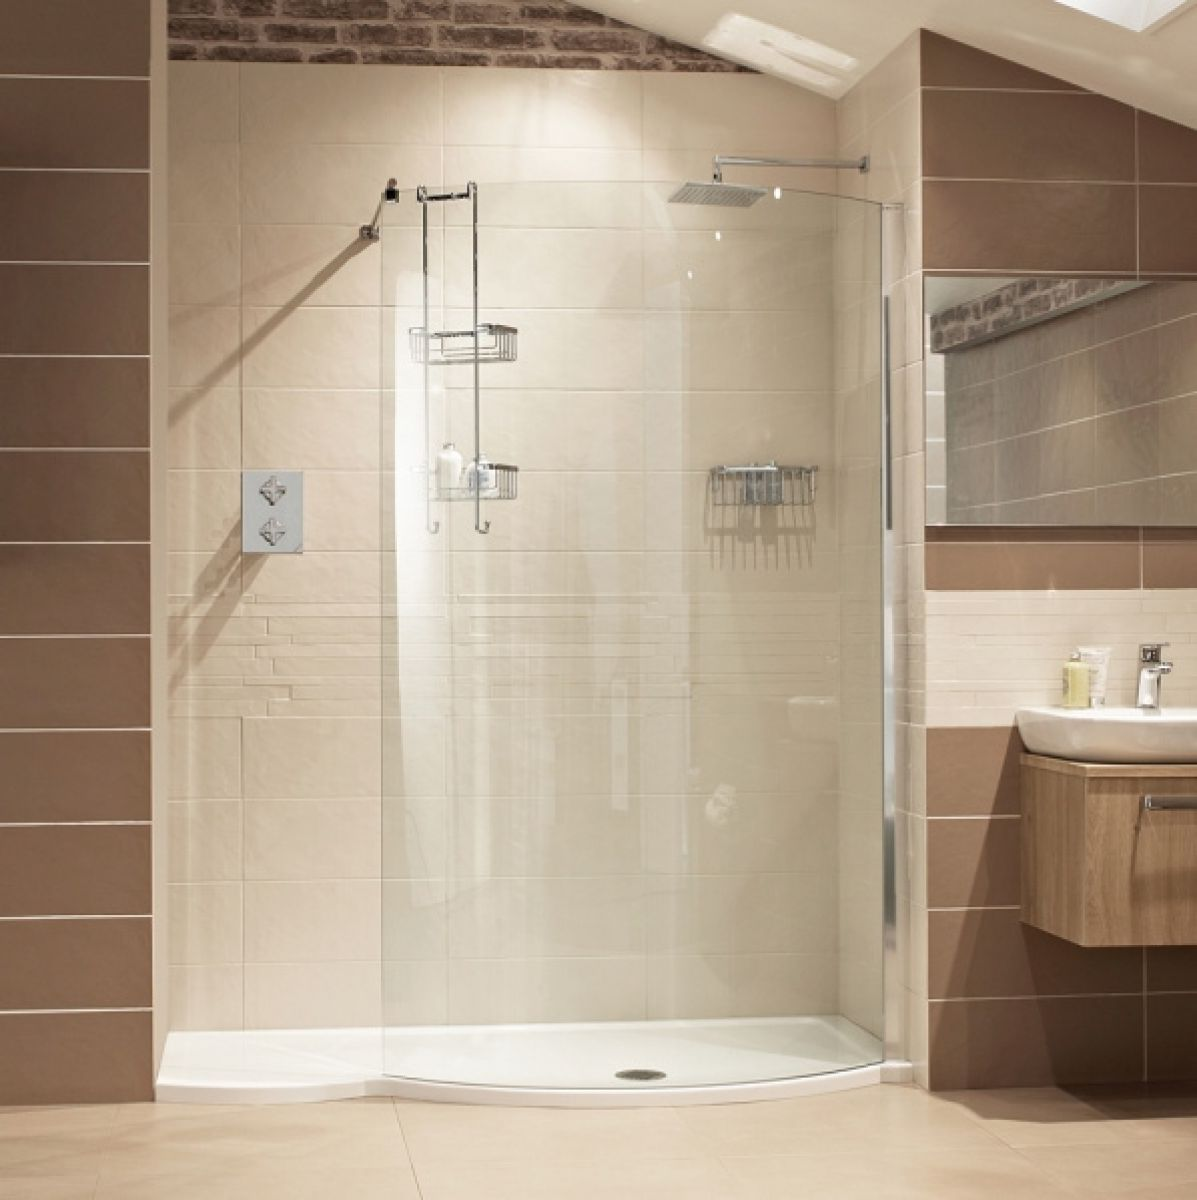 Roman lumin8 colossus 1700mm shower enclosure uk bathrooms for Walk in shower plans and specs